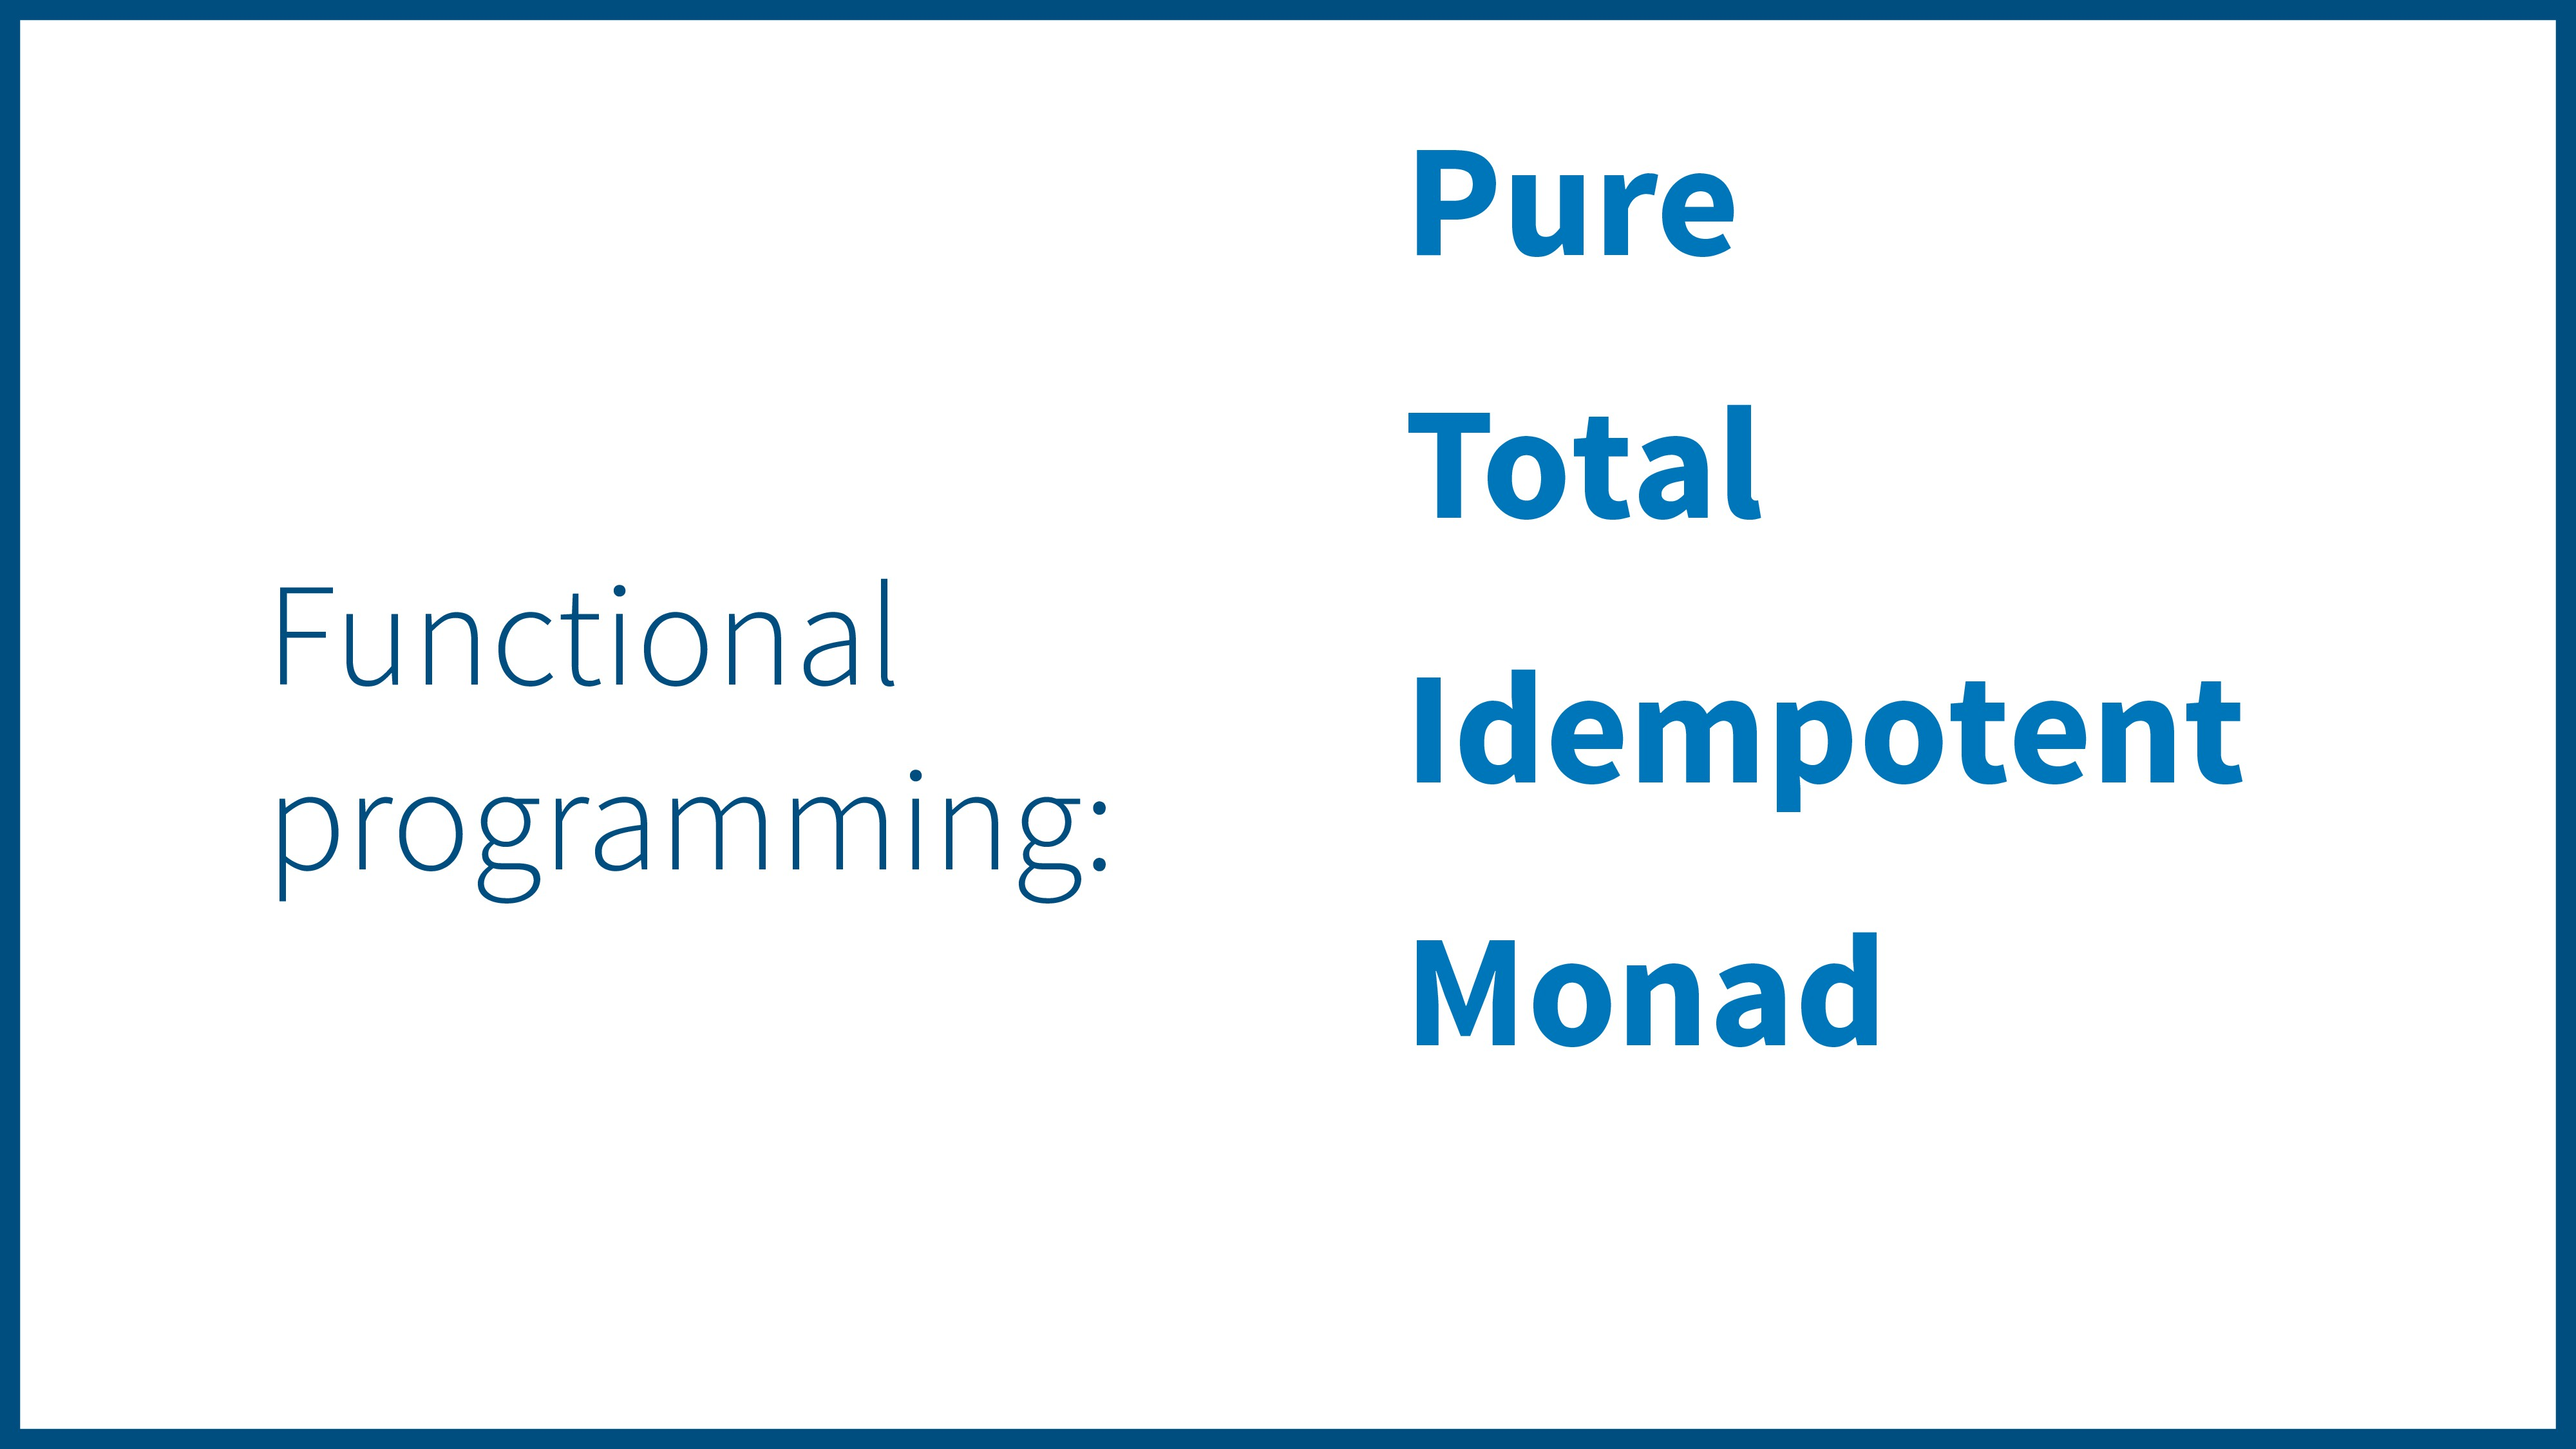 Pure Total Idempotent Monad Functional programm...